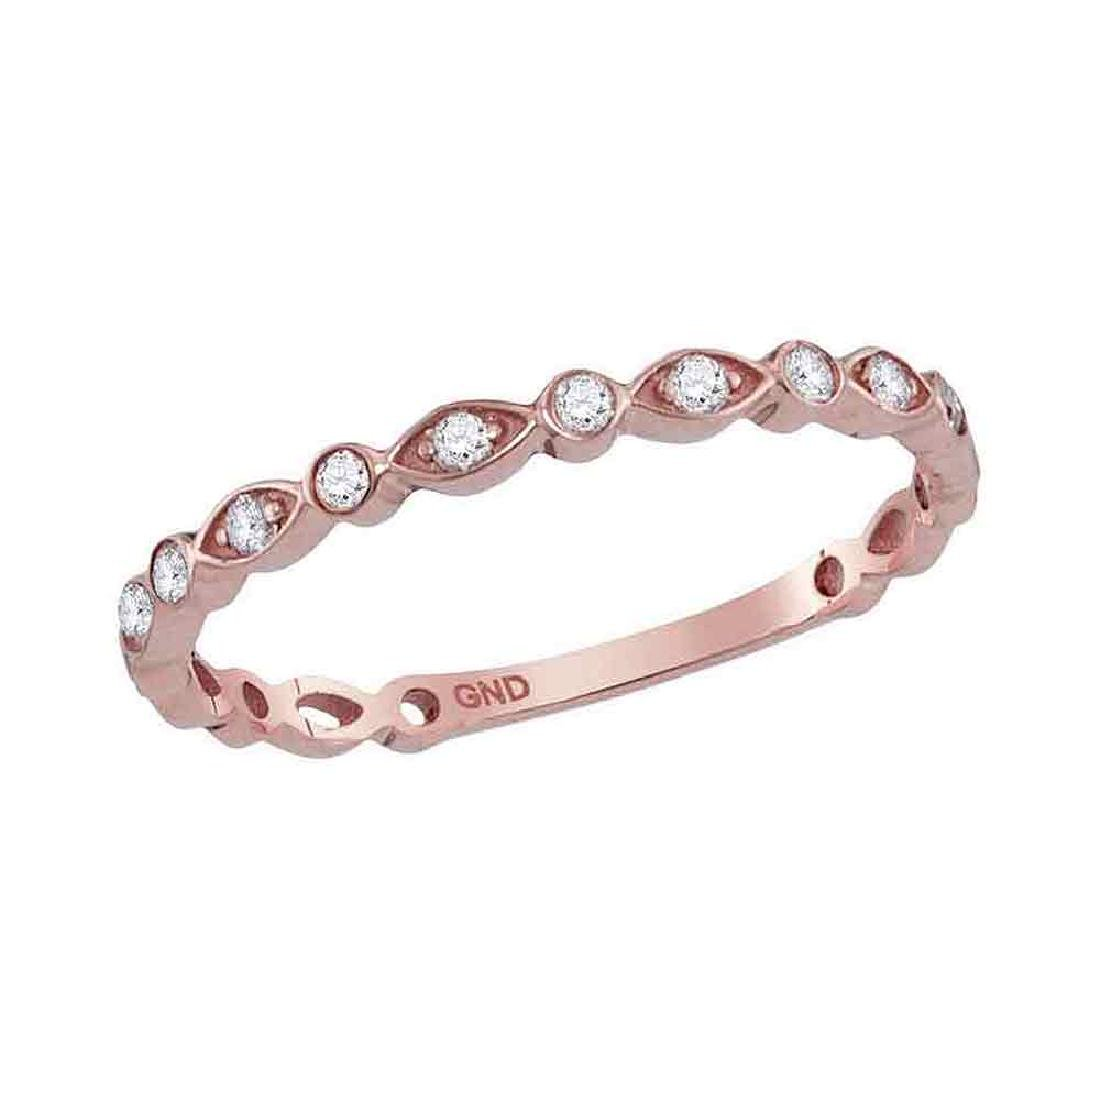 0.13 CTW Diamond Stackable Ring 14KT Rose Gold -